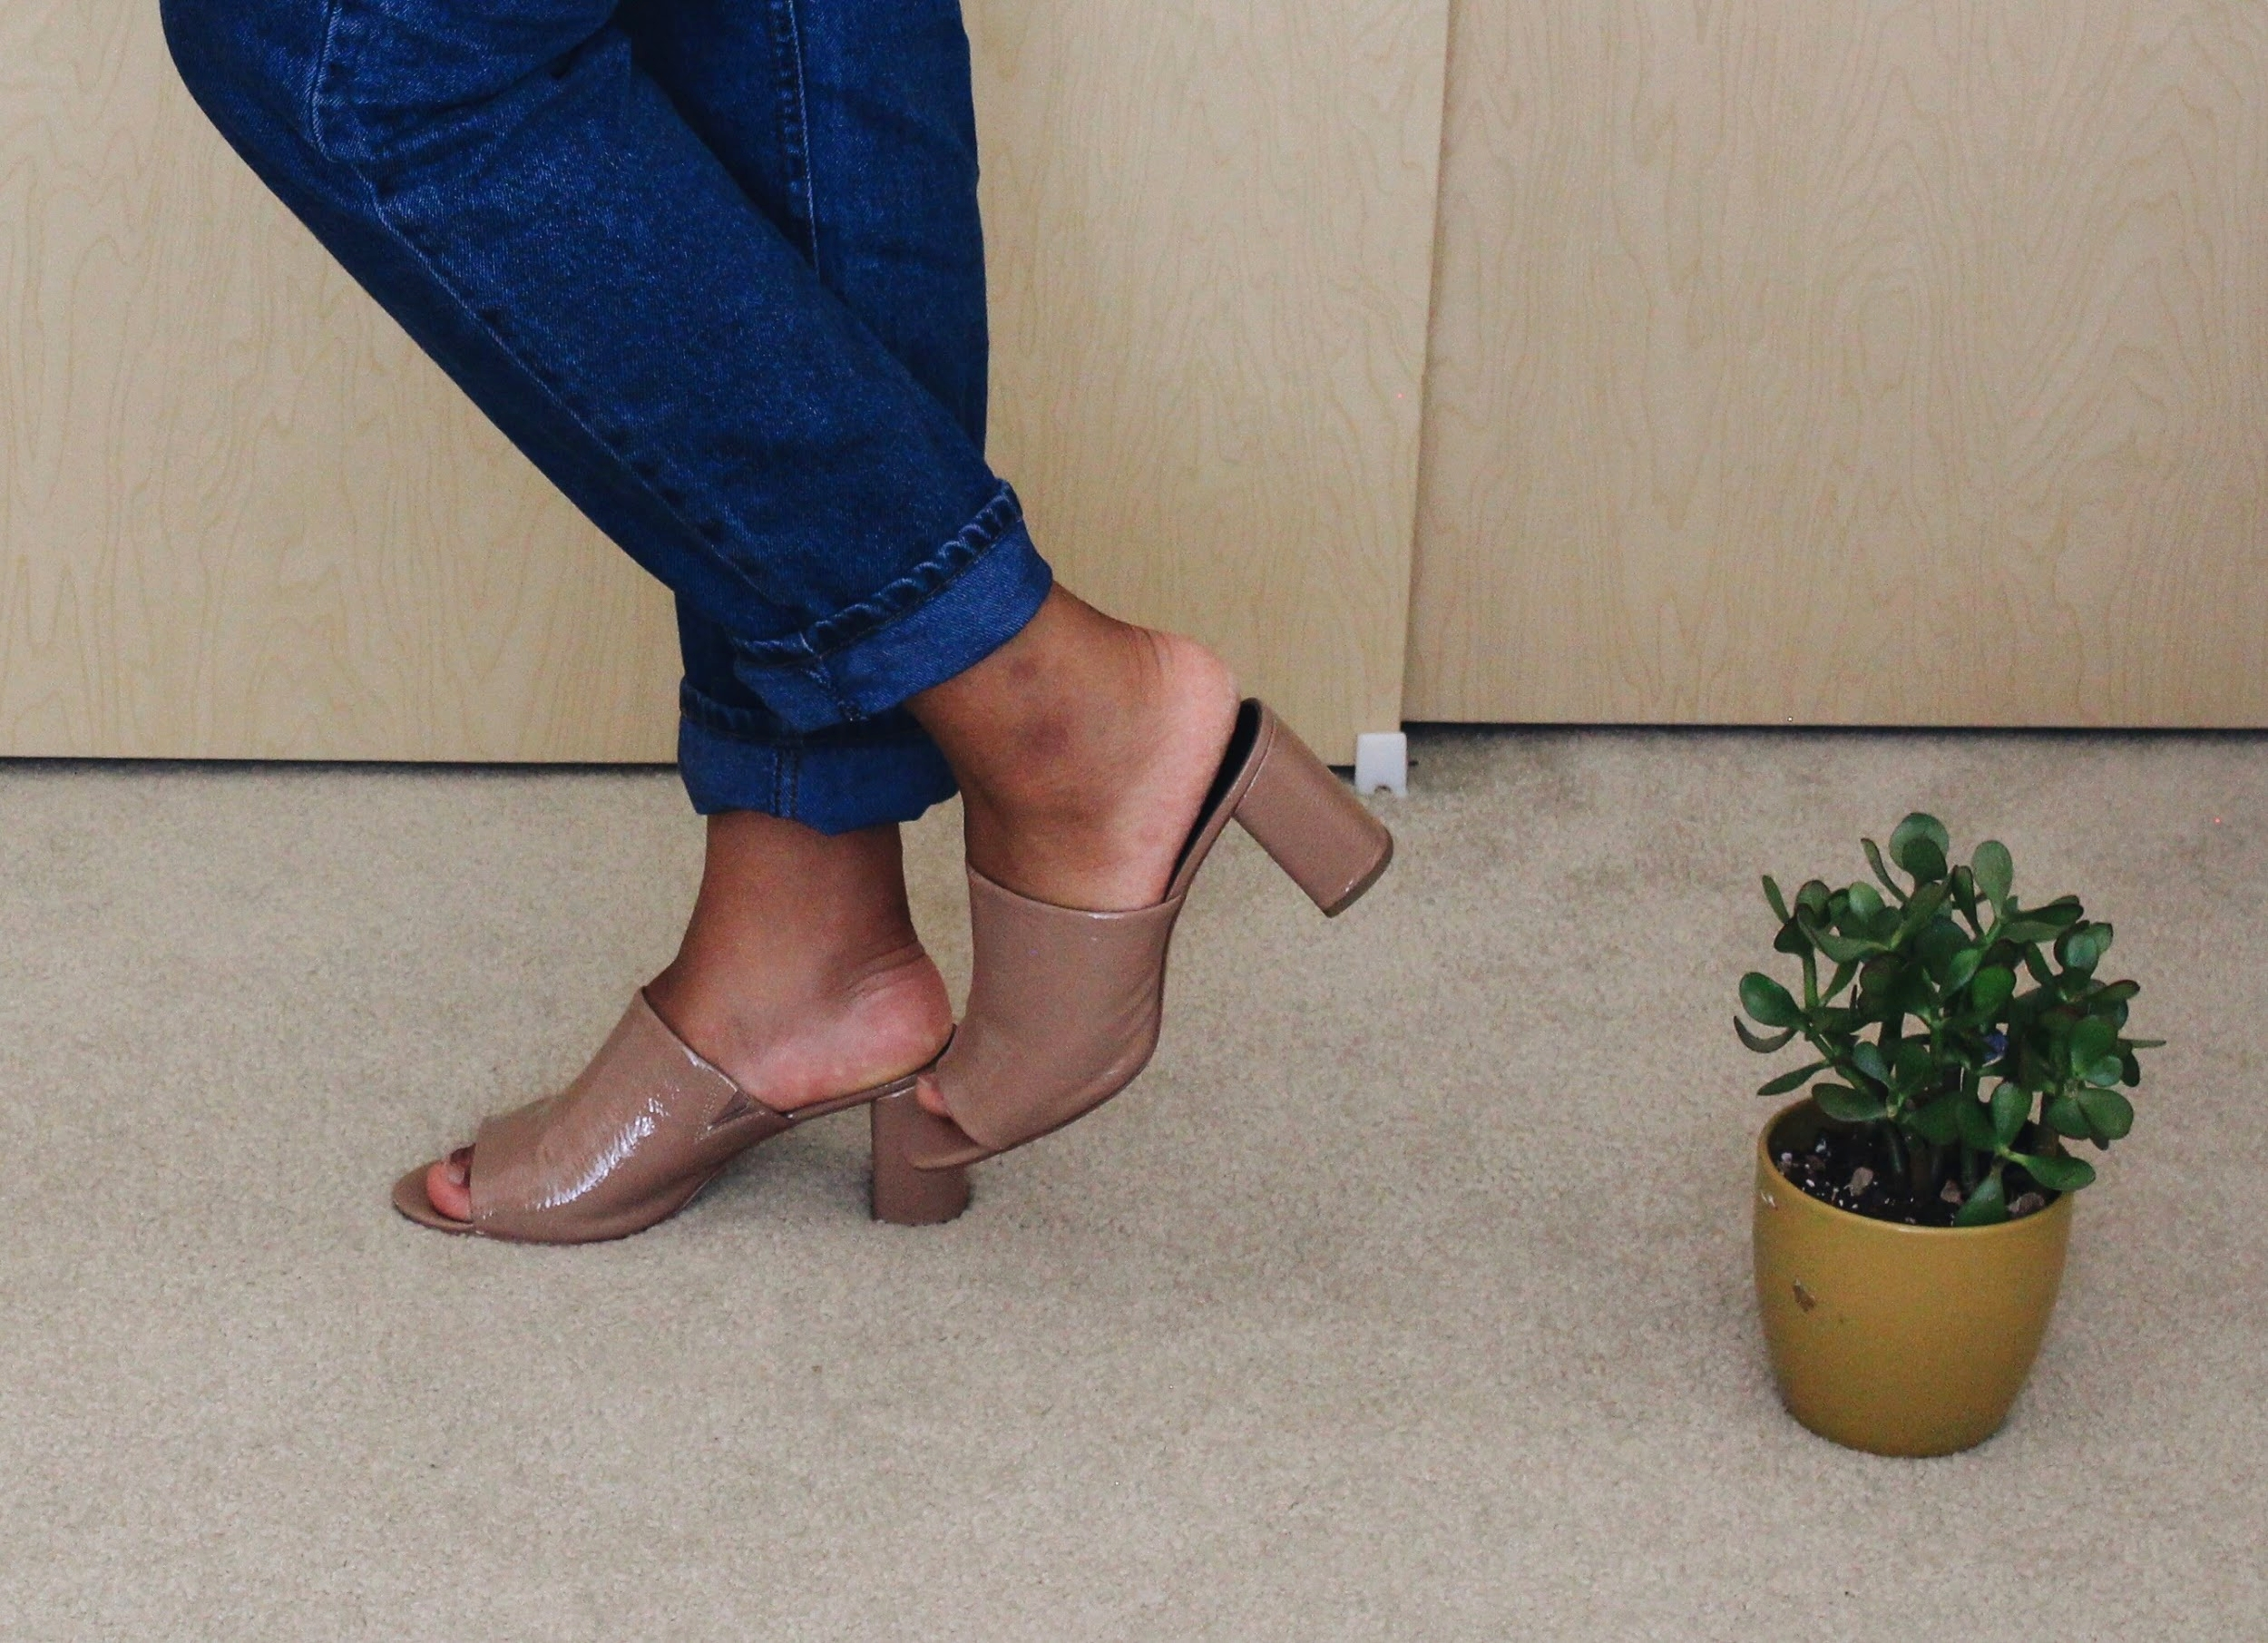 BCBG nude mules // A Week Of Boho Minimalist Outfits With Deborah Shepherd From Clothed In Abundance on The Good Trade